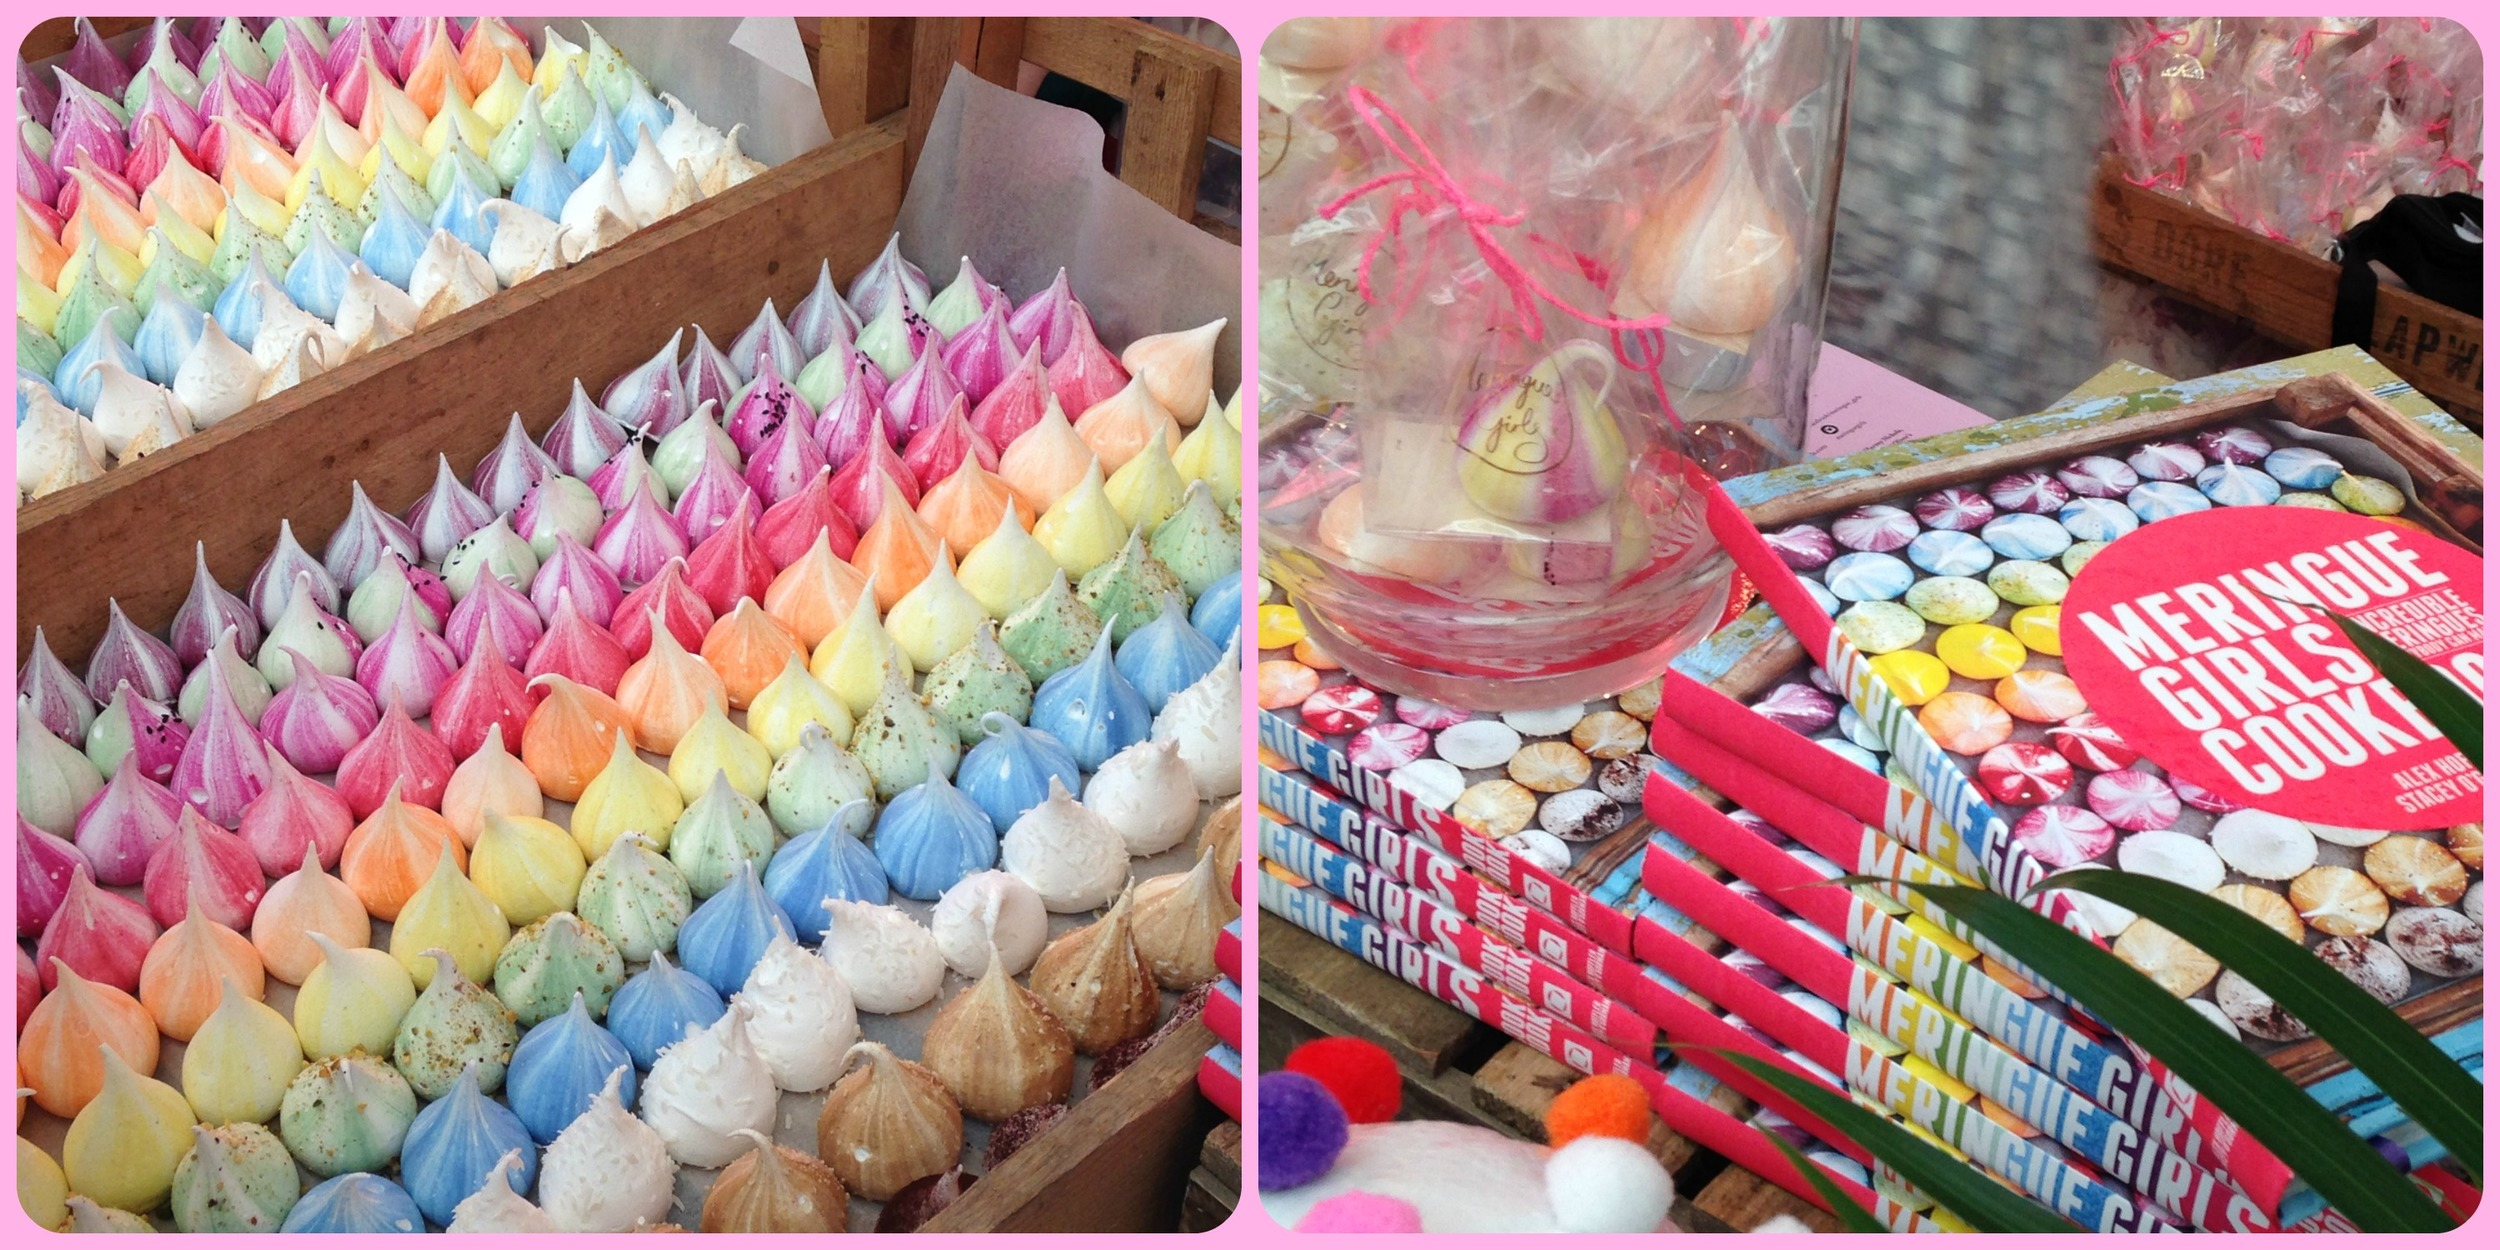 Meringue Kisses by the Meringue Girls